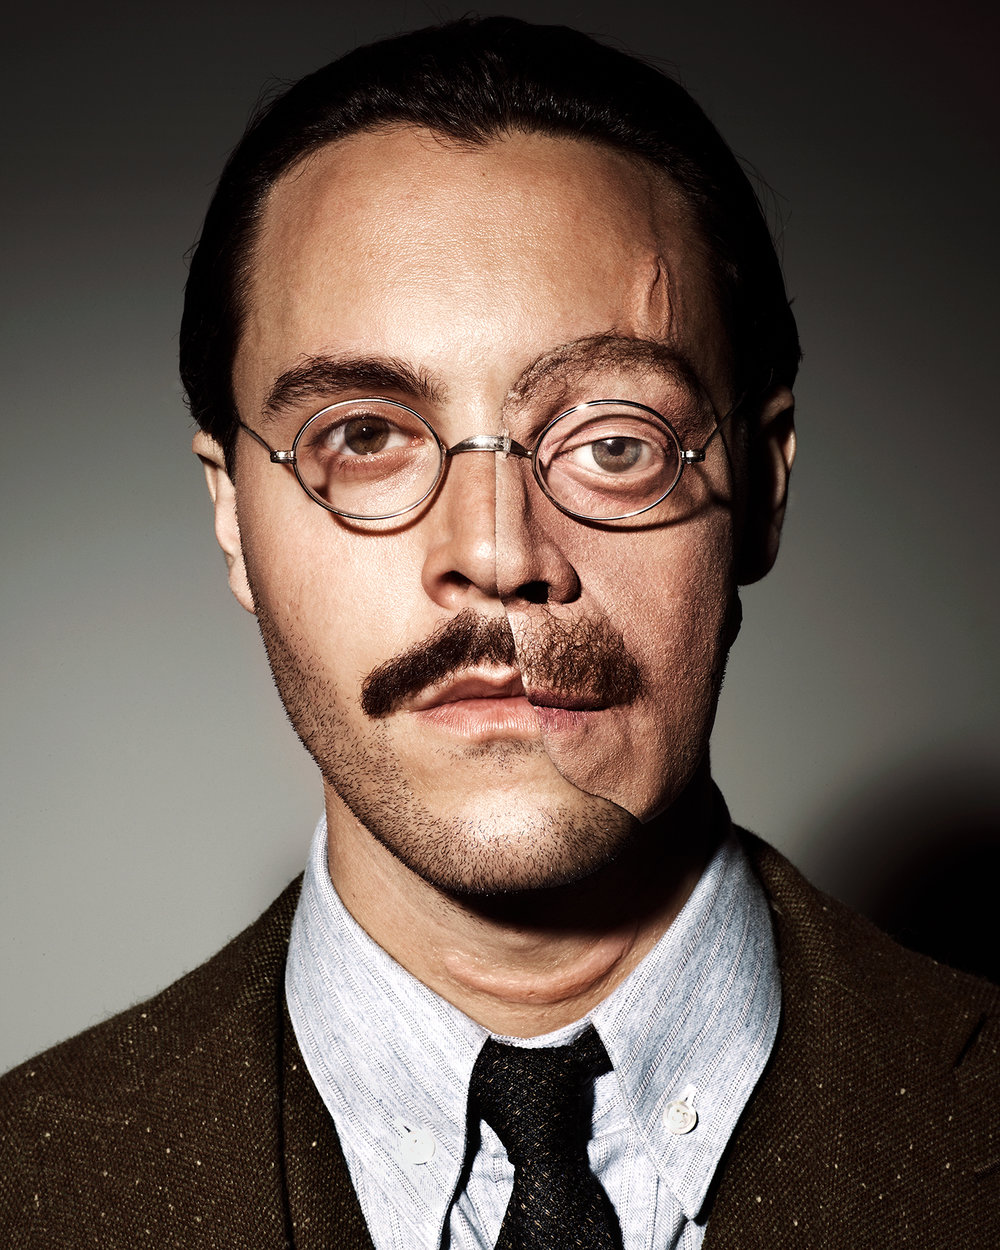 HBO - Jack Huston in Boardwalk Empire - Brooklyn, NY